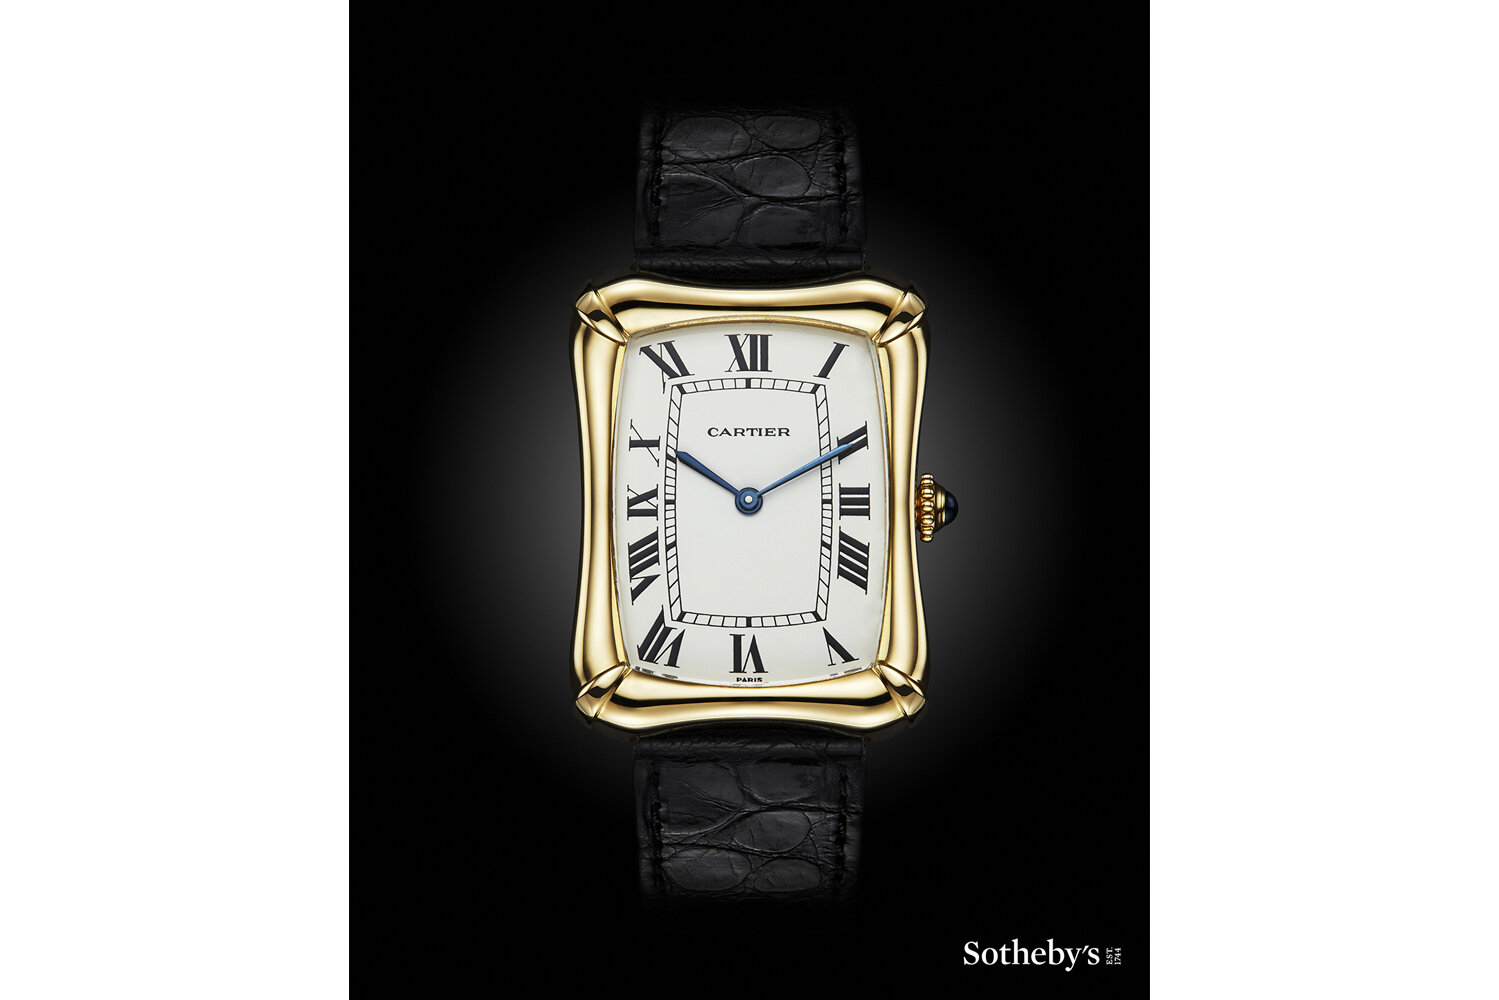 Cartier_Watch.jpg